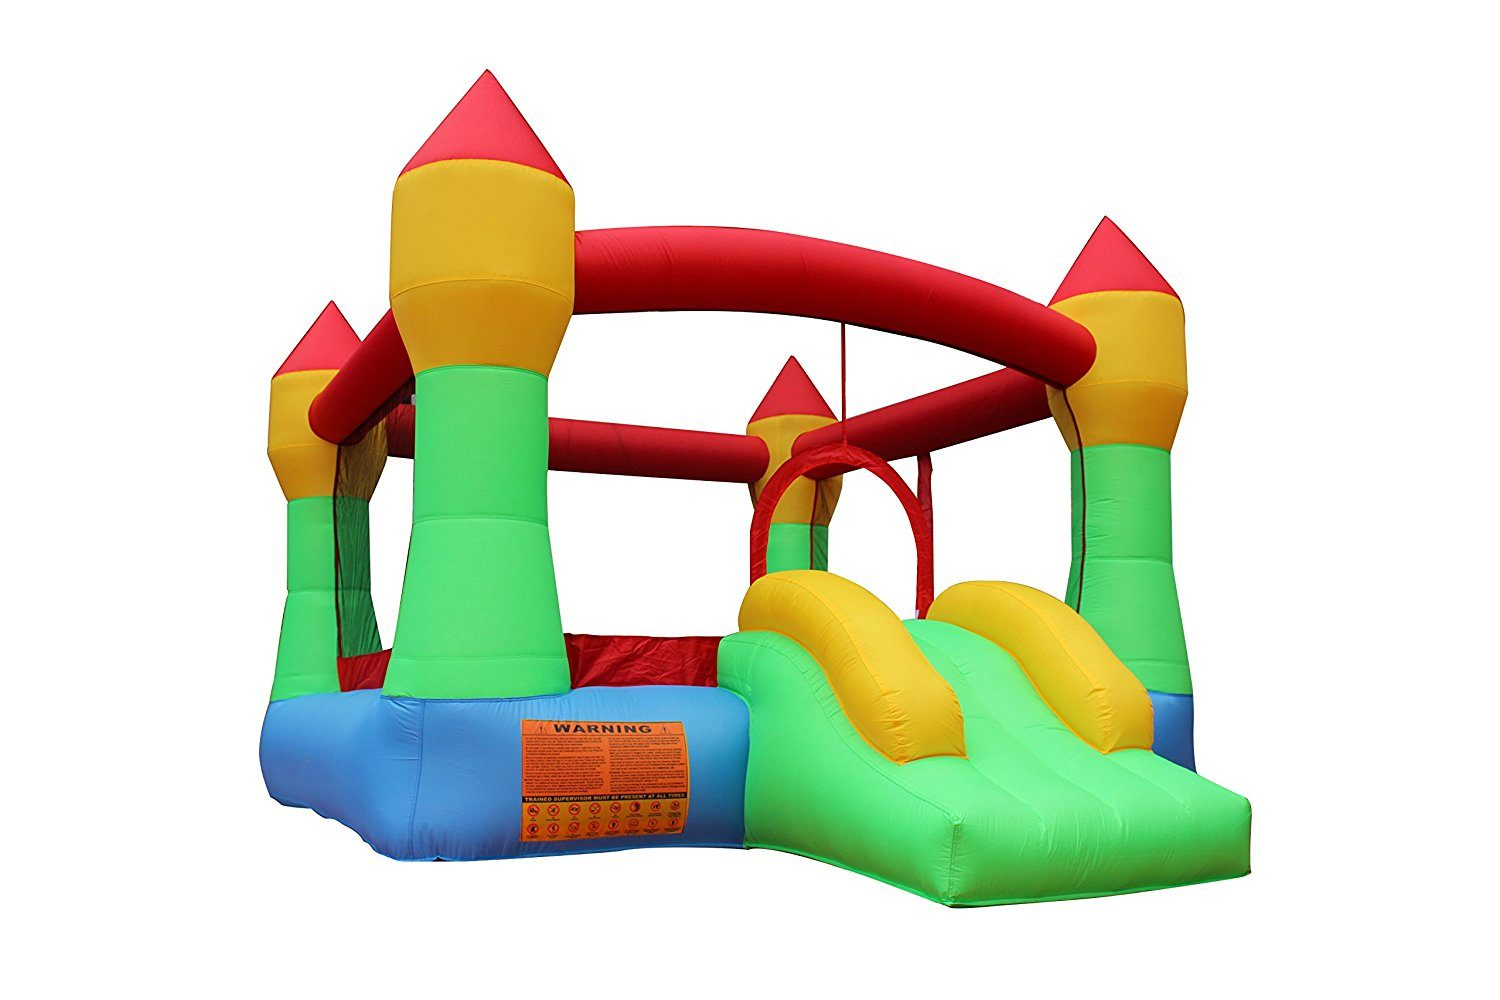 Cloud 9 inflatable bouncy castle makes great kids parties